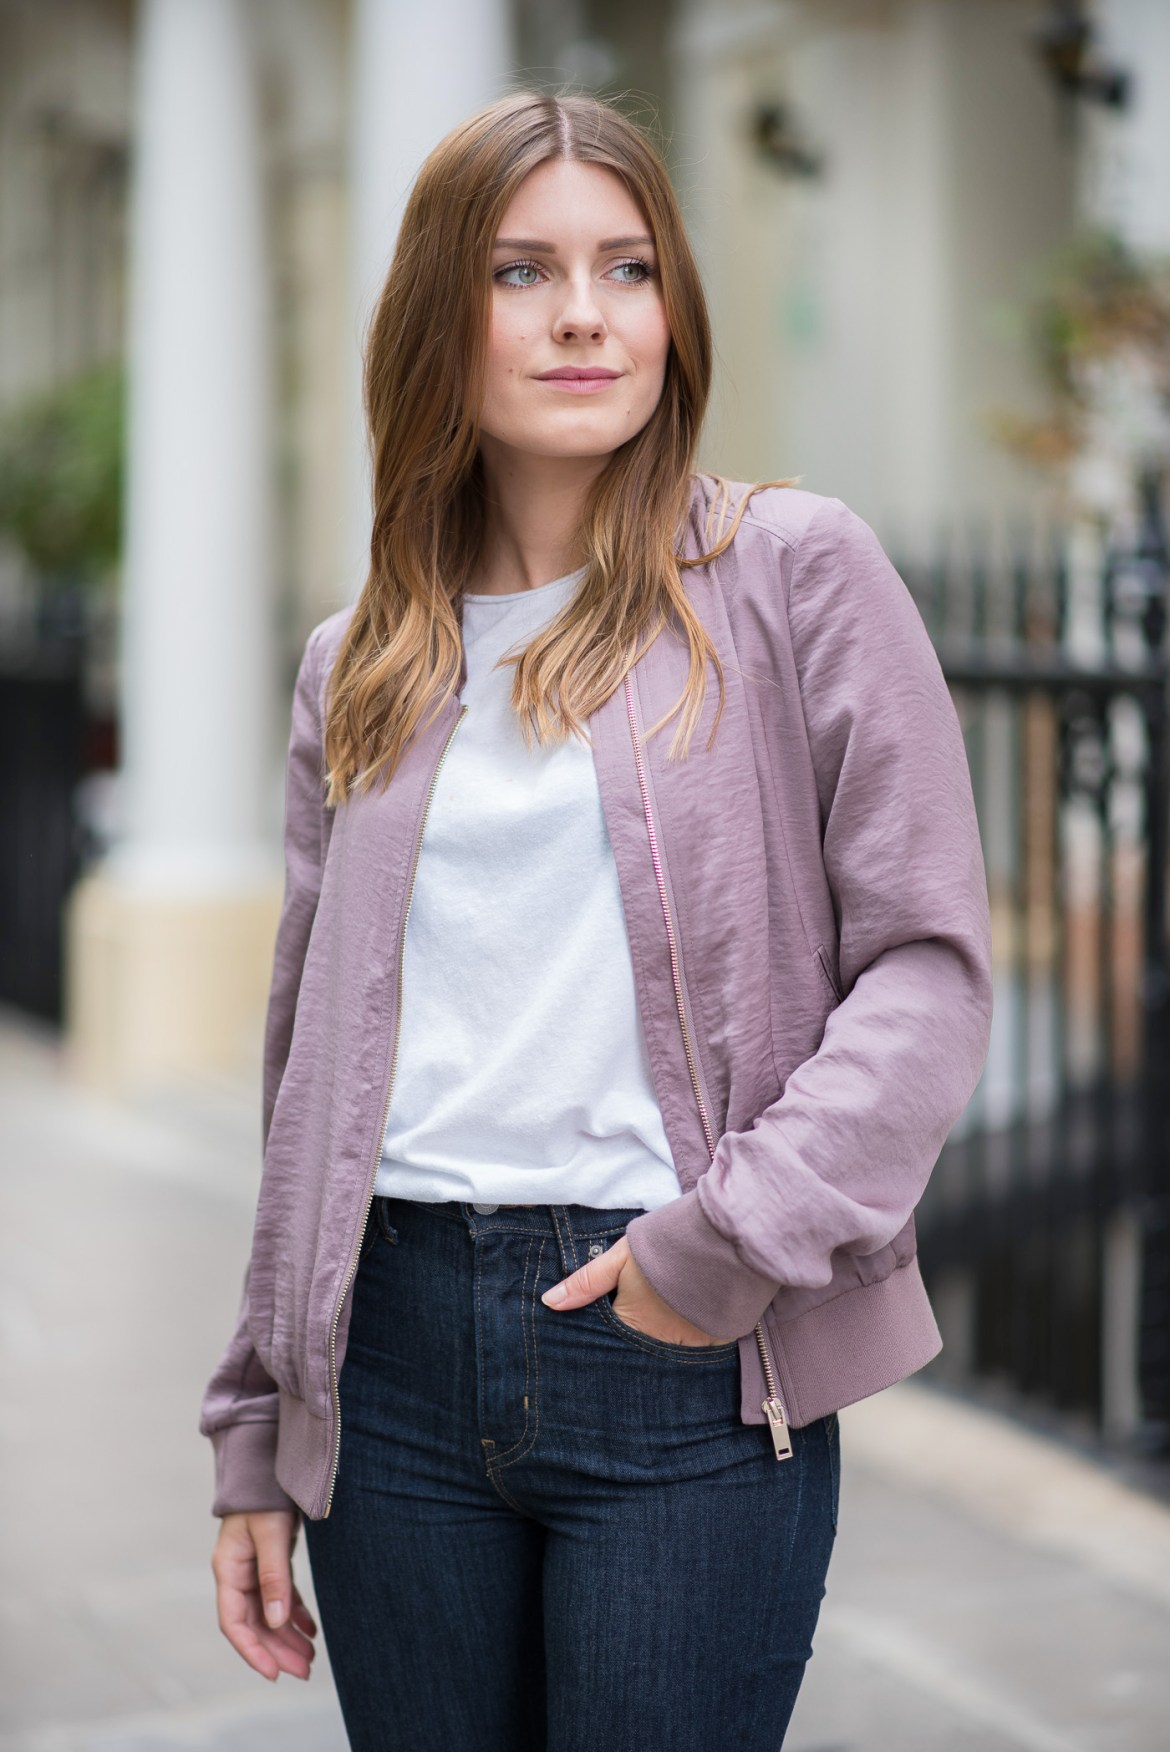 comfy_outfit_bomber_jacket_london_2